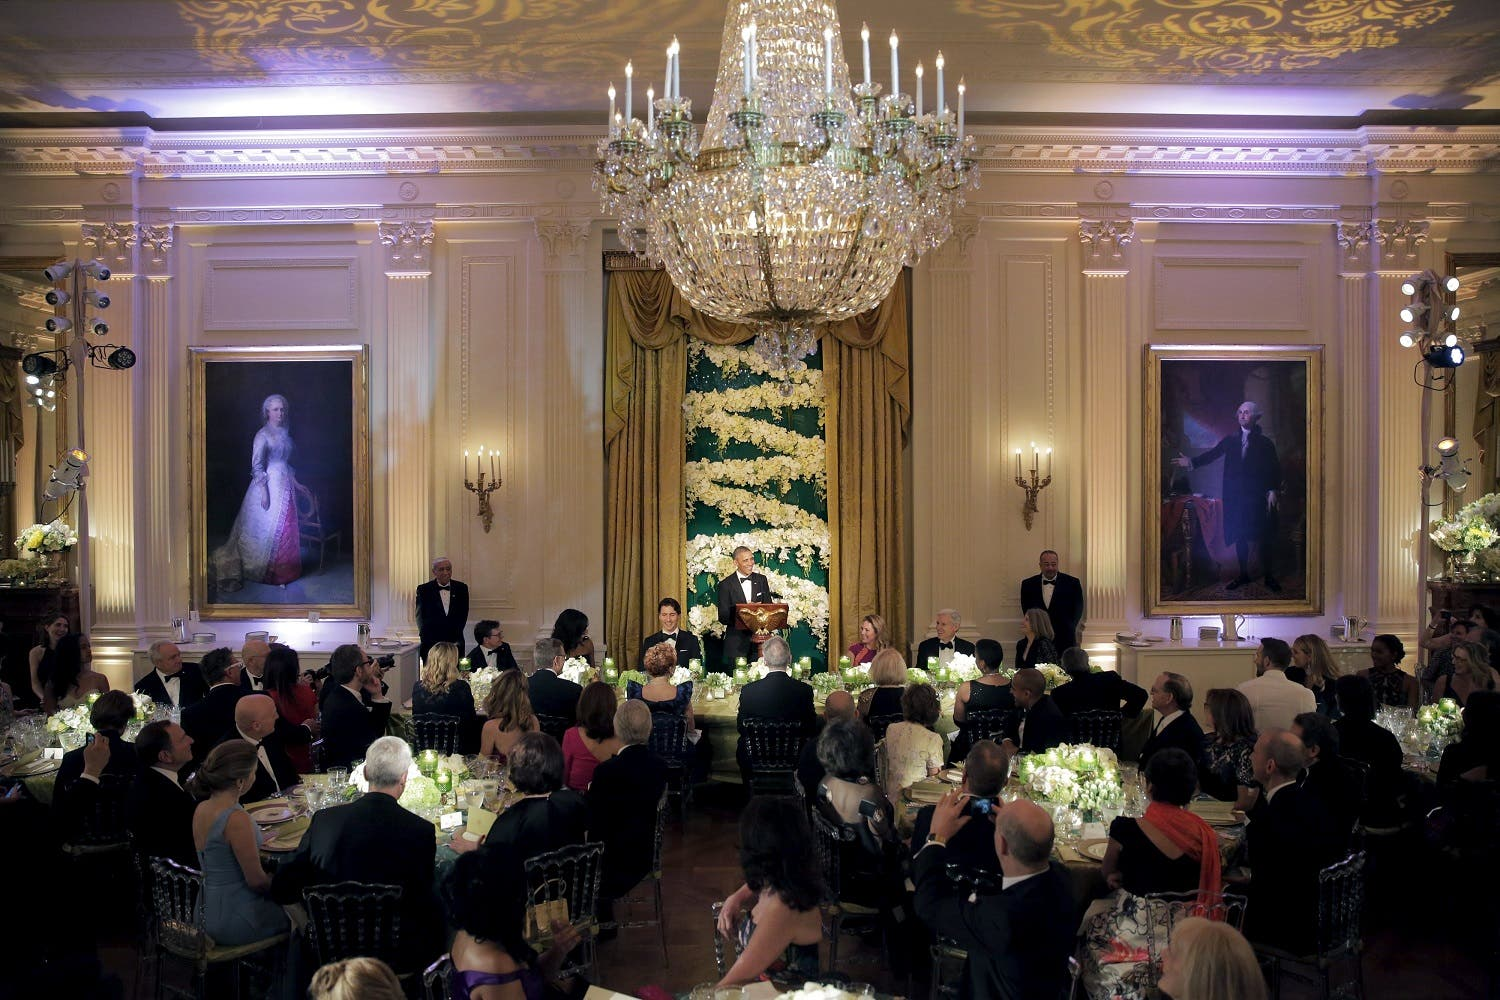 U.S. President Barack Obama makes a toast for Prime Minister of Canada Justin Trudeau and his wife Sophie Gregoire-Trudeau during a State Dinner at the White House in Washington March 10, 2016. REUTERS